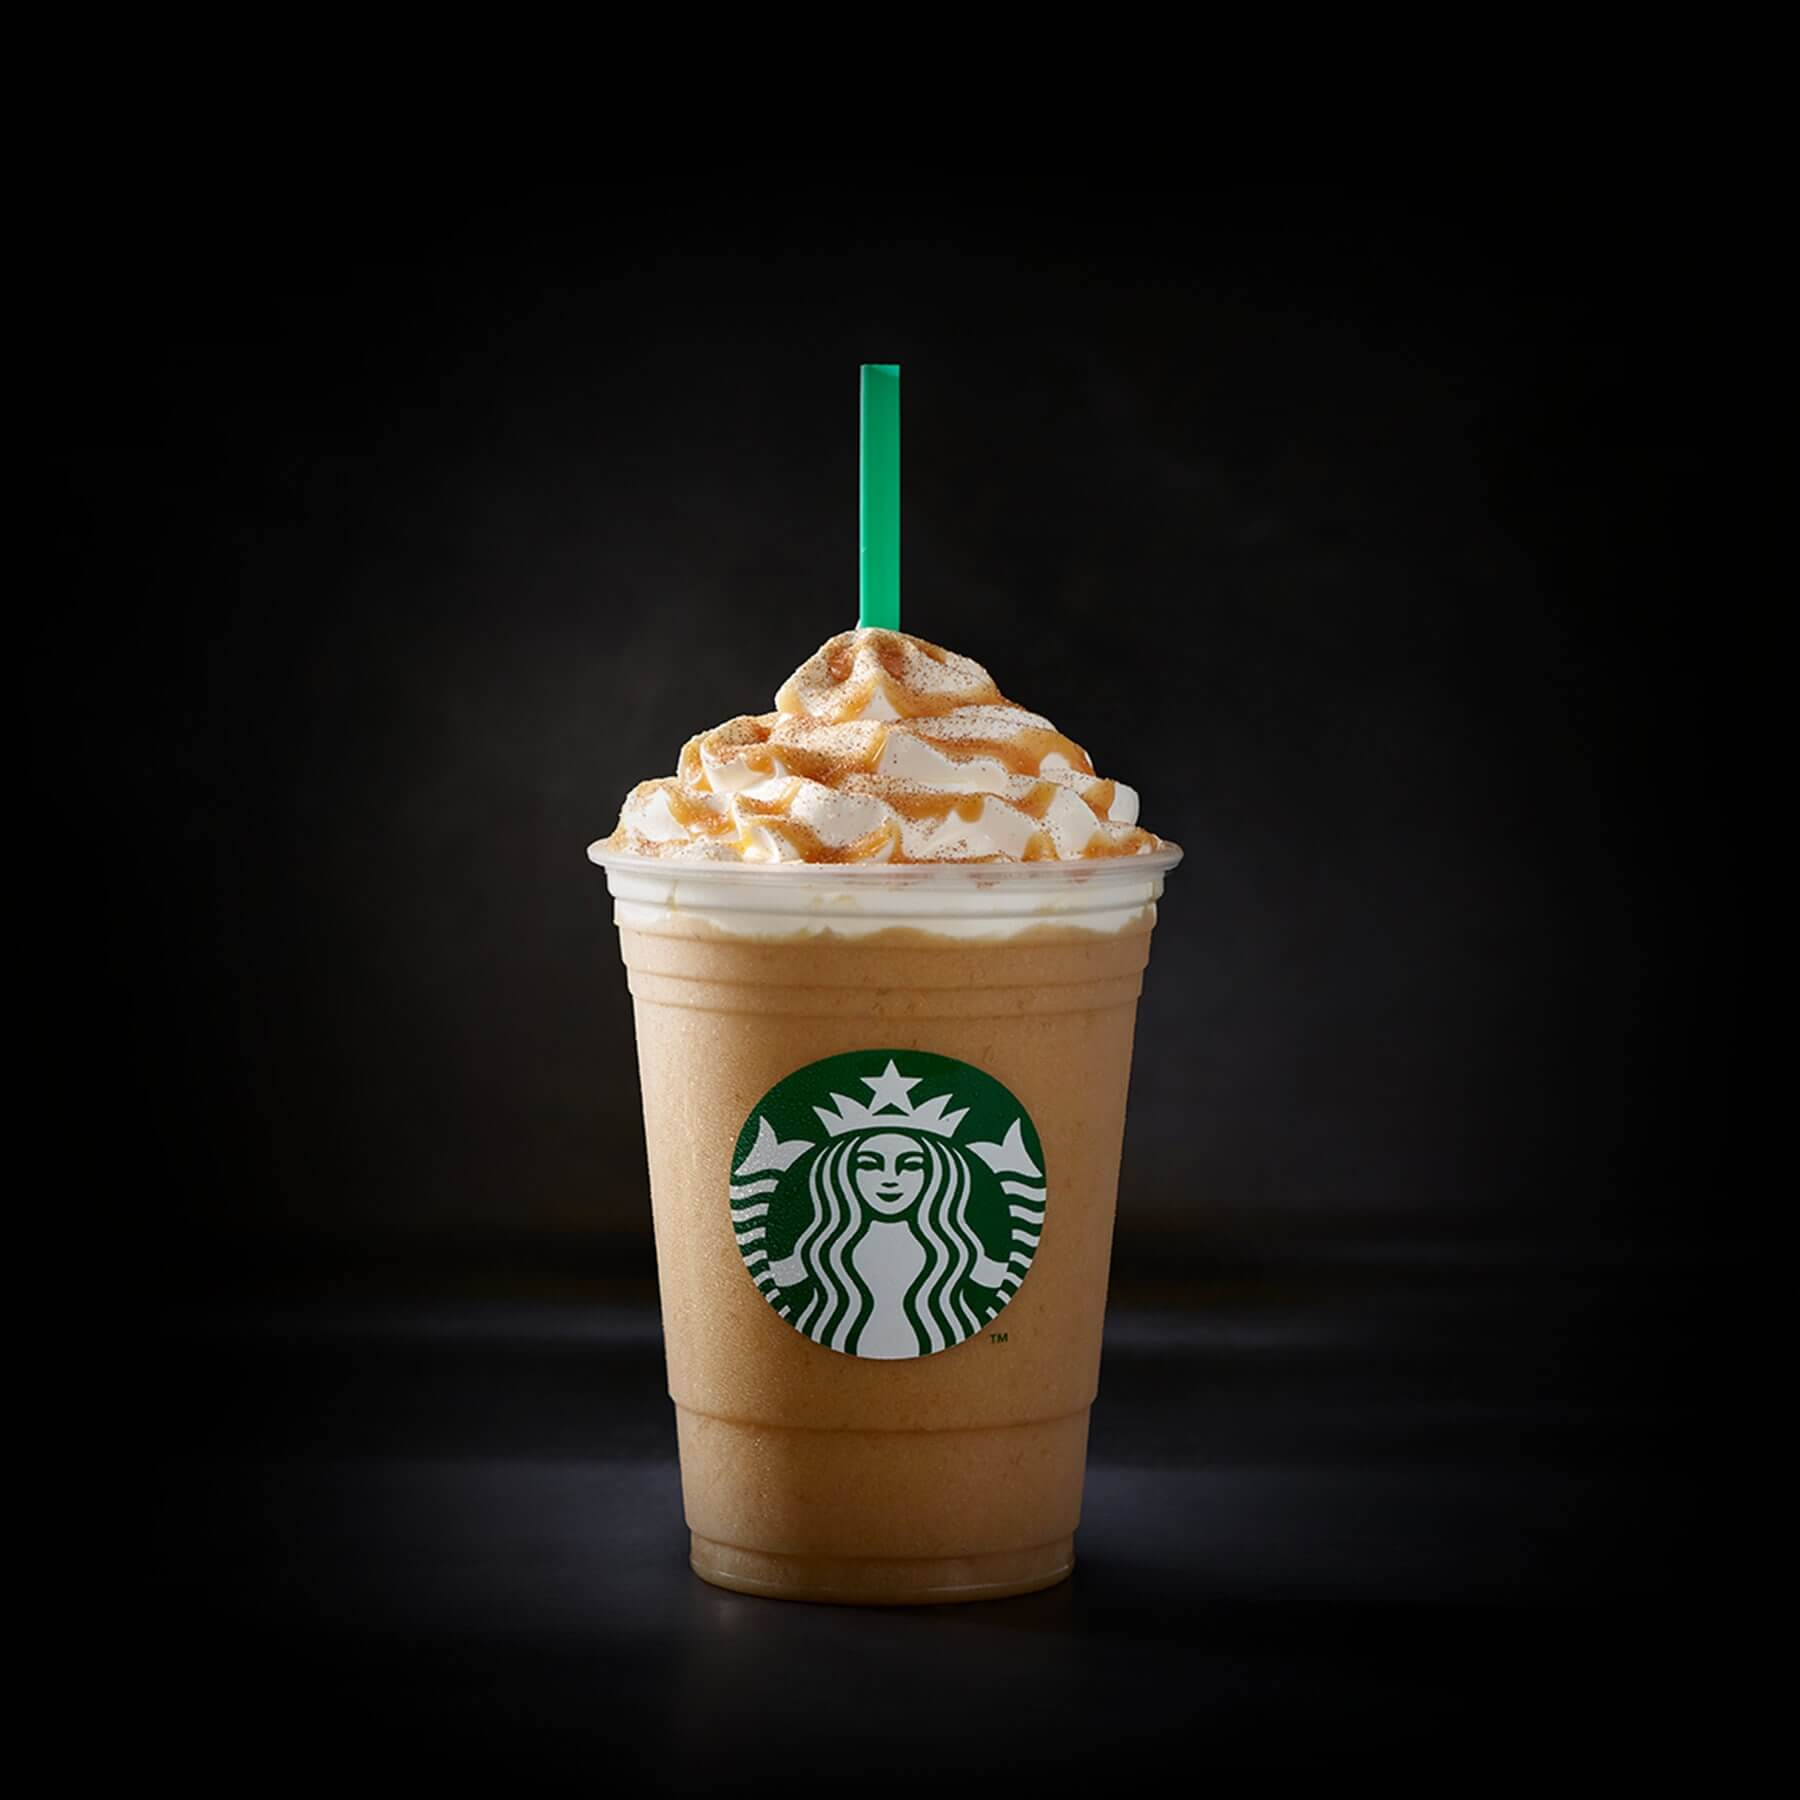 Harga Menu Frappuccino Blended Beverages Starbucks